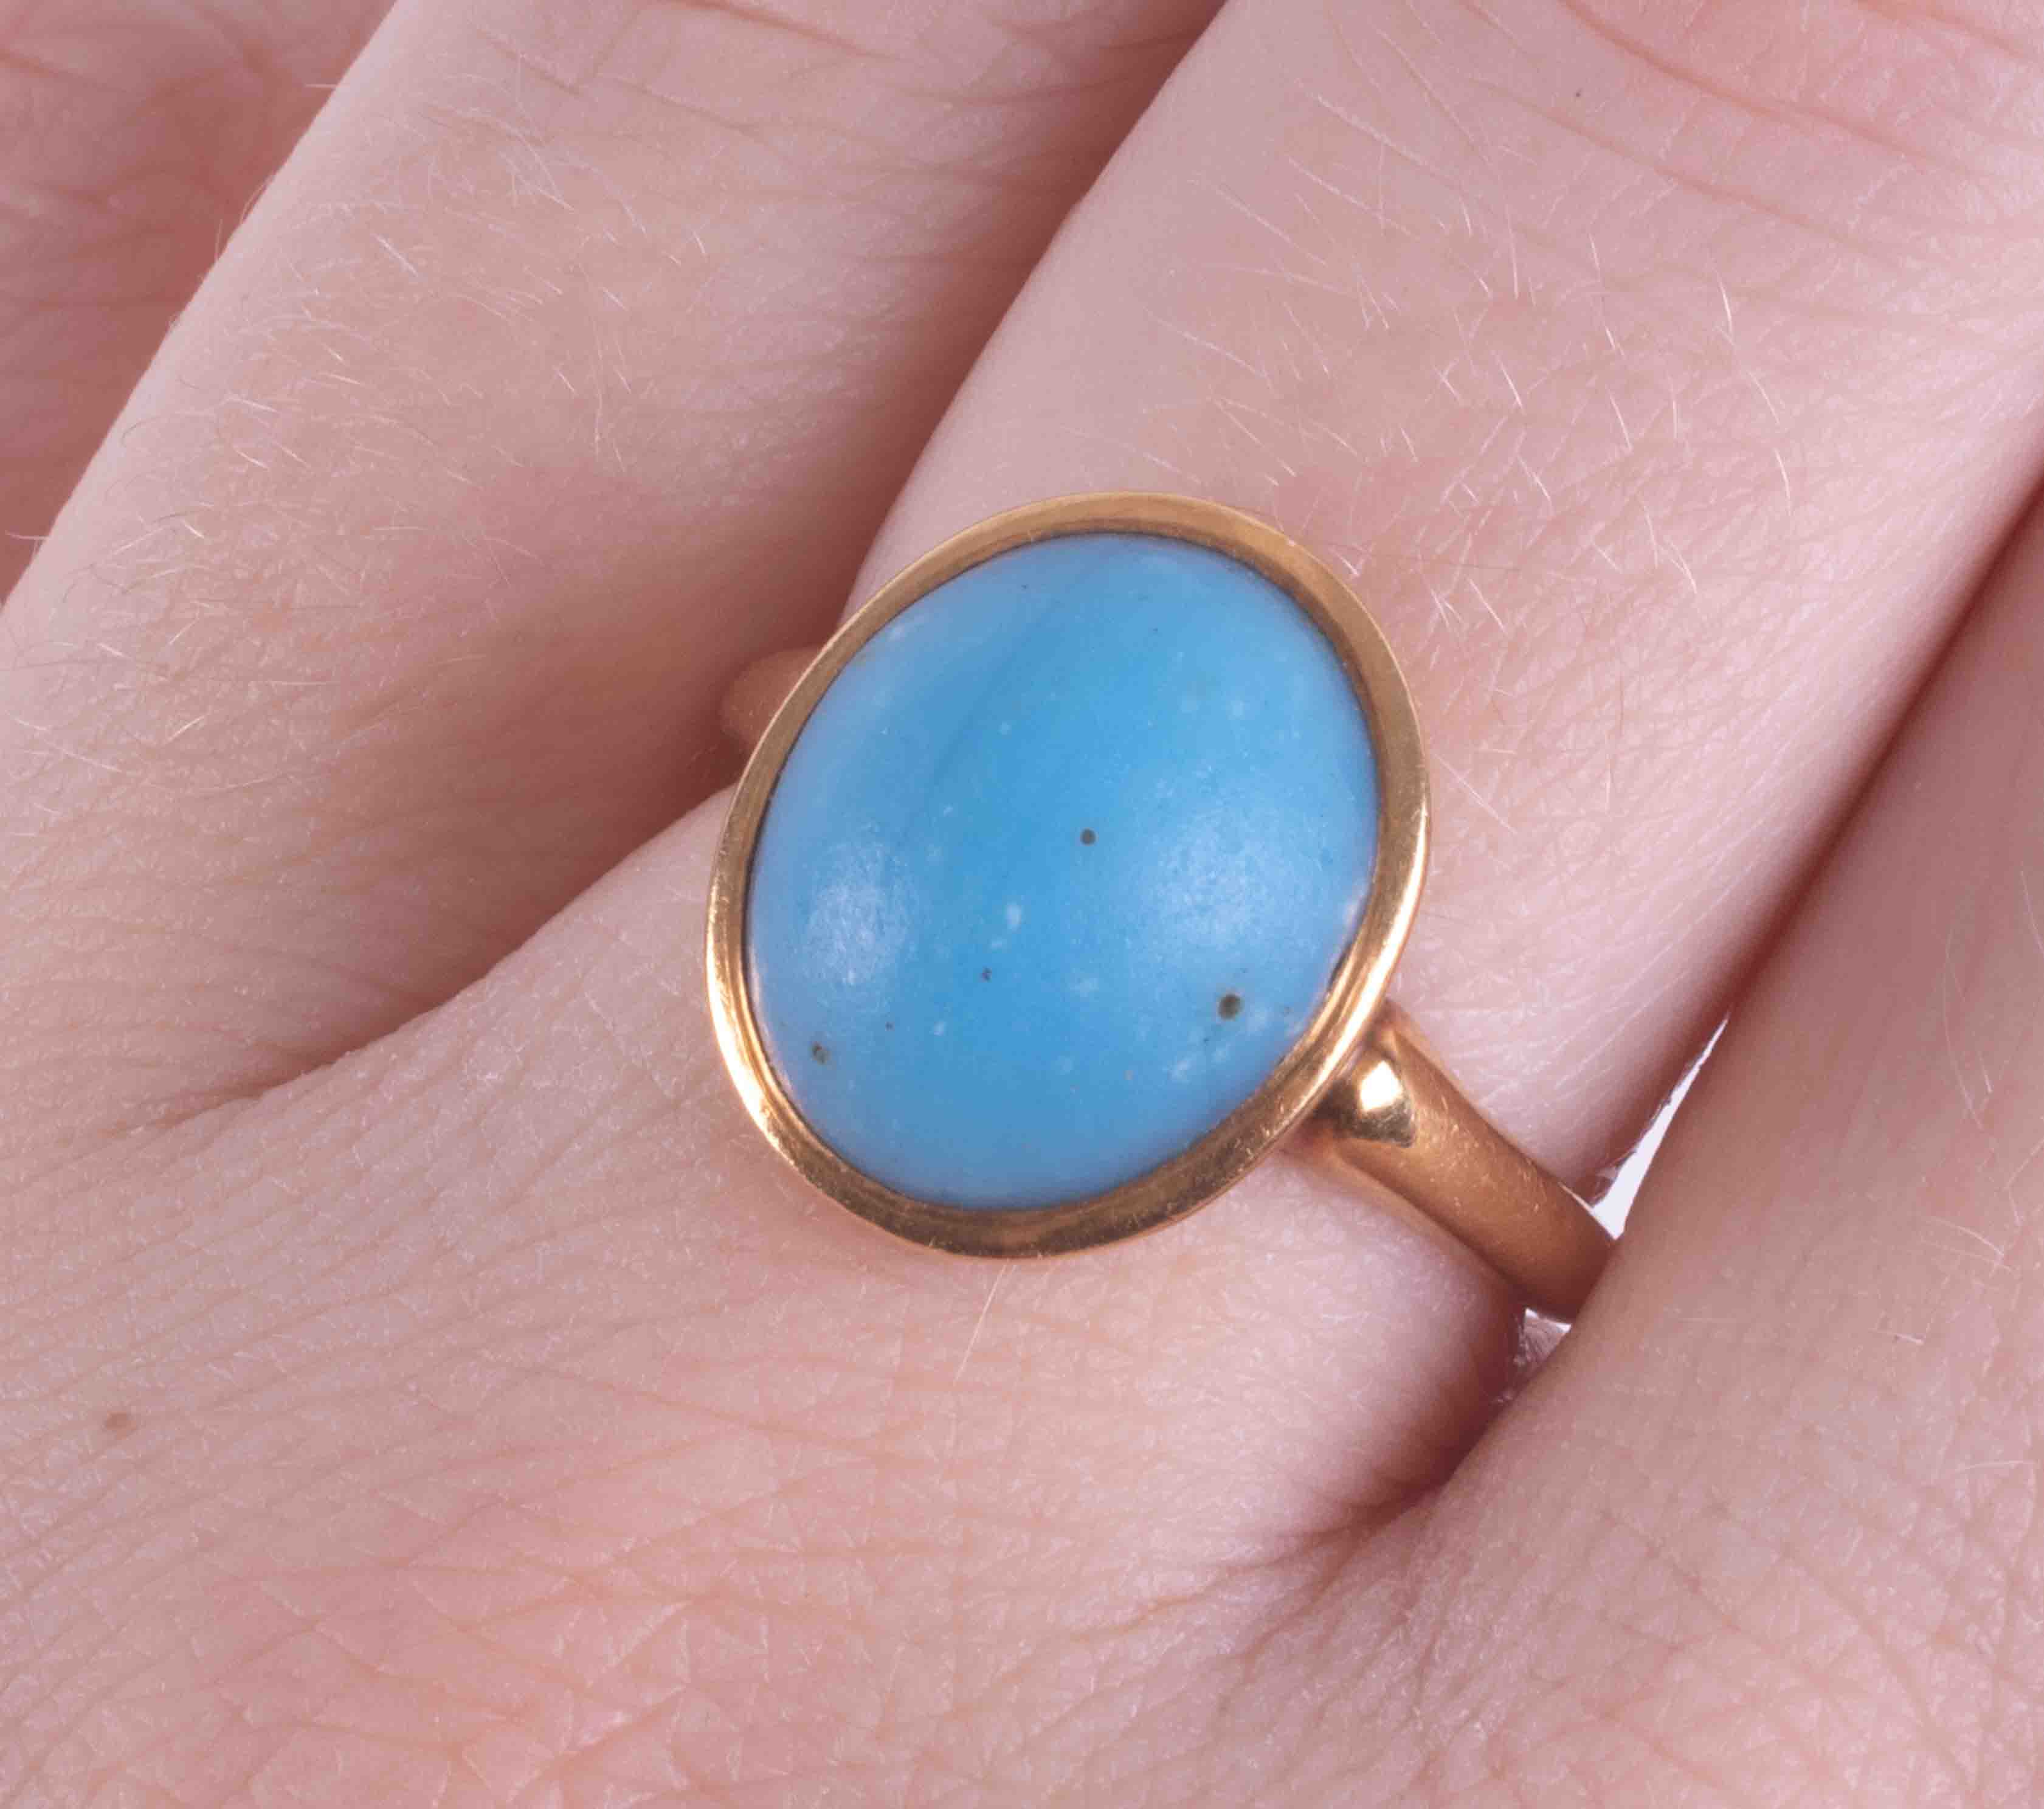 An 18ct yellow gold ring set with an oval cabochon cut turquoise measuring approx. 12.7mm x 11mm, - Image 2 of 2